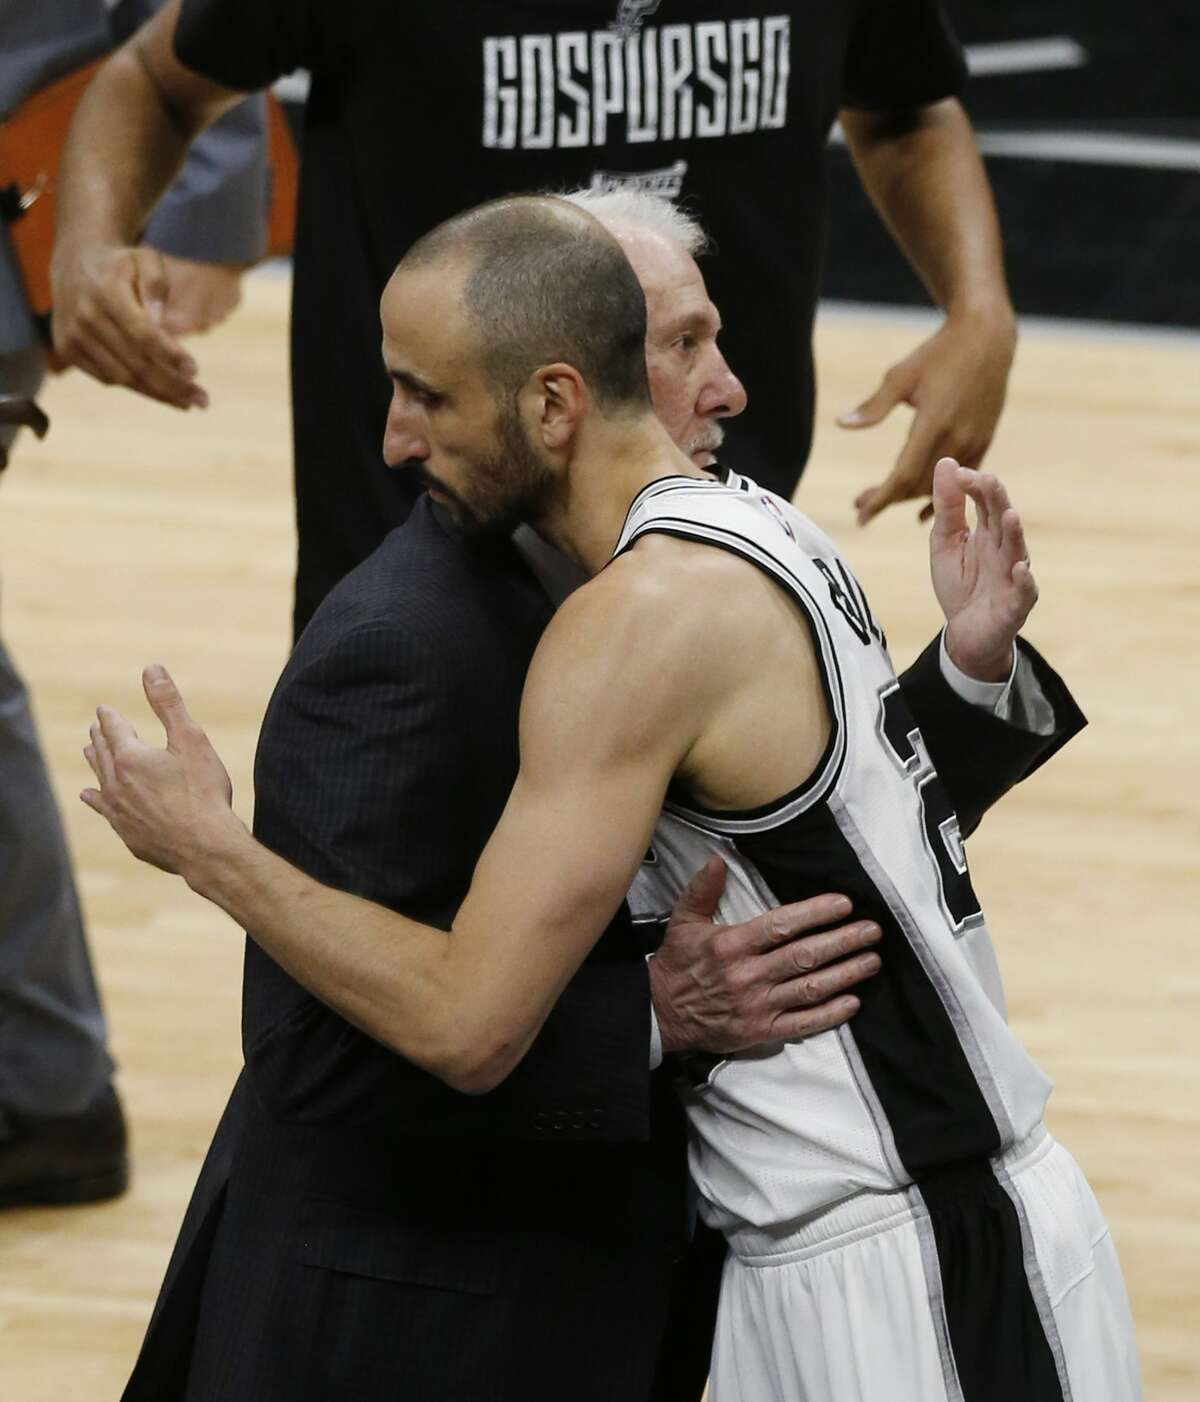 Spurs head coach Gregg Popovich gives Manu Ginobili (20) a hug as he he goes in as starter for Game 4 against the Golden State Warriors during the Western Conference Finals at the AT&T Center on Monday, May 22, 2017. (Kin Man Hui/San Antonio Express-News)